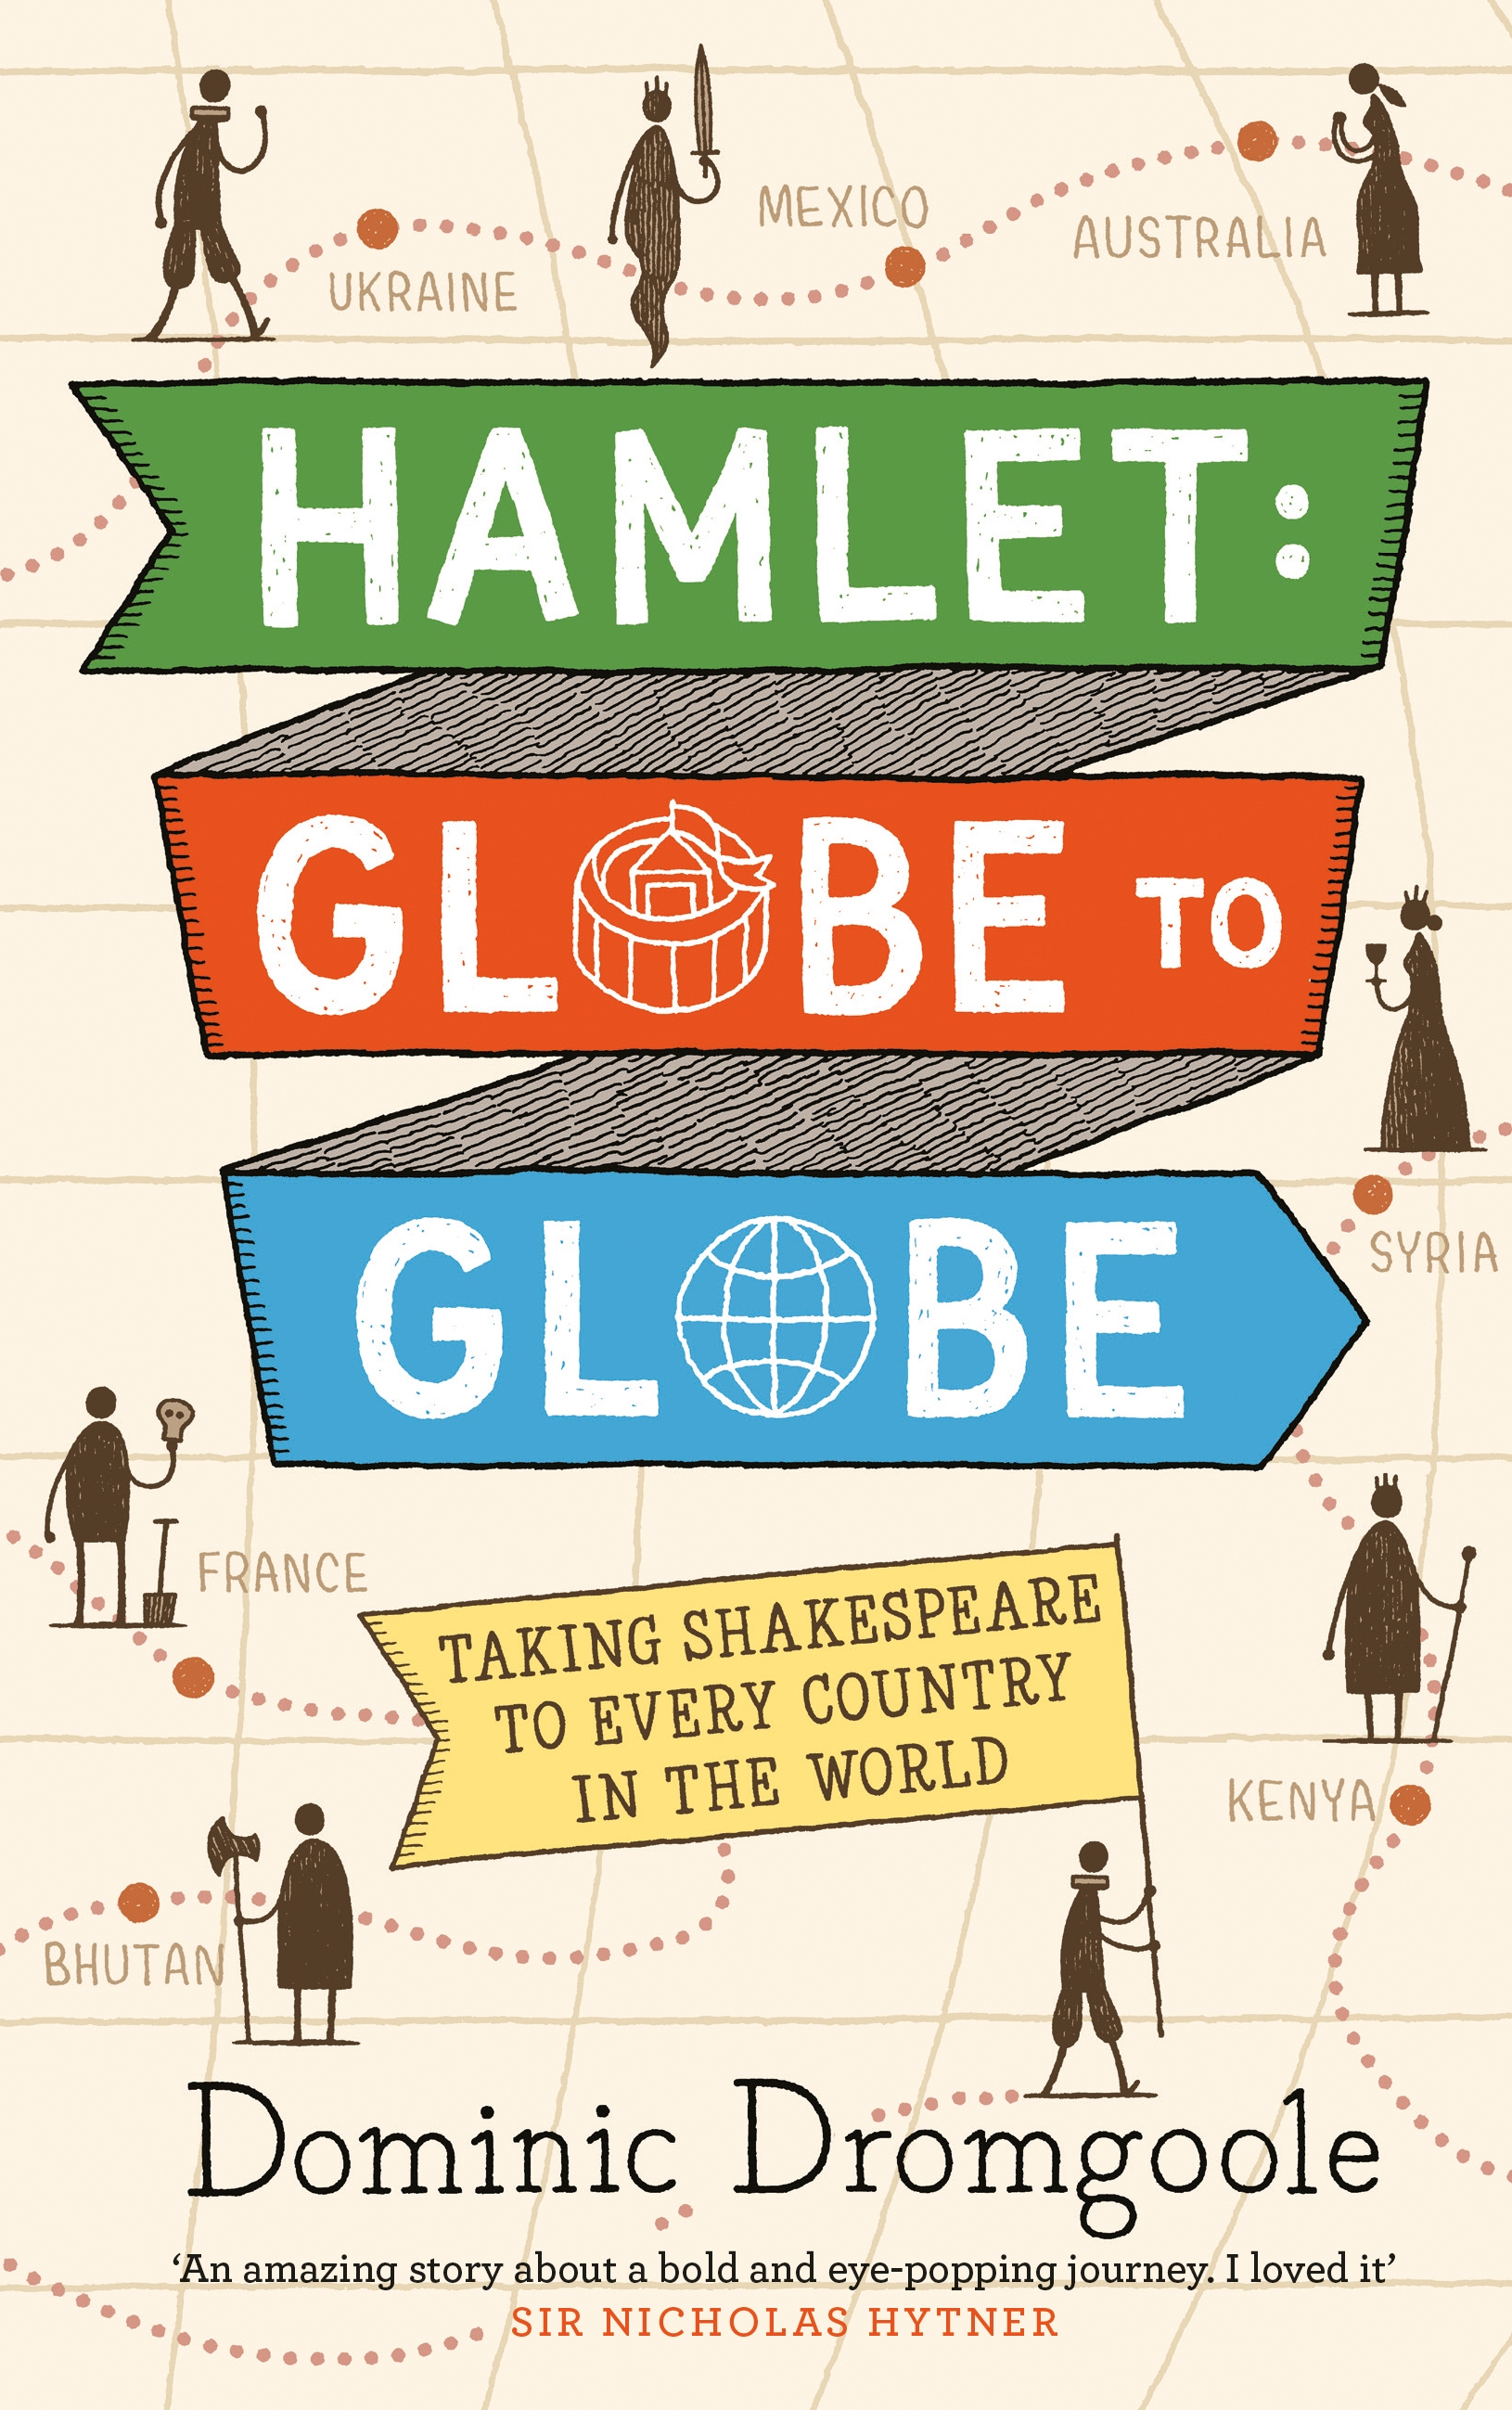 Taking Hamlet World Wide